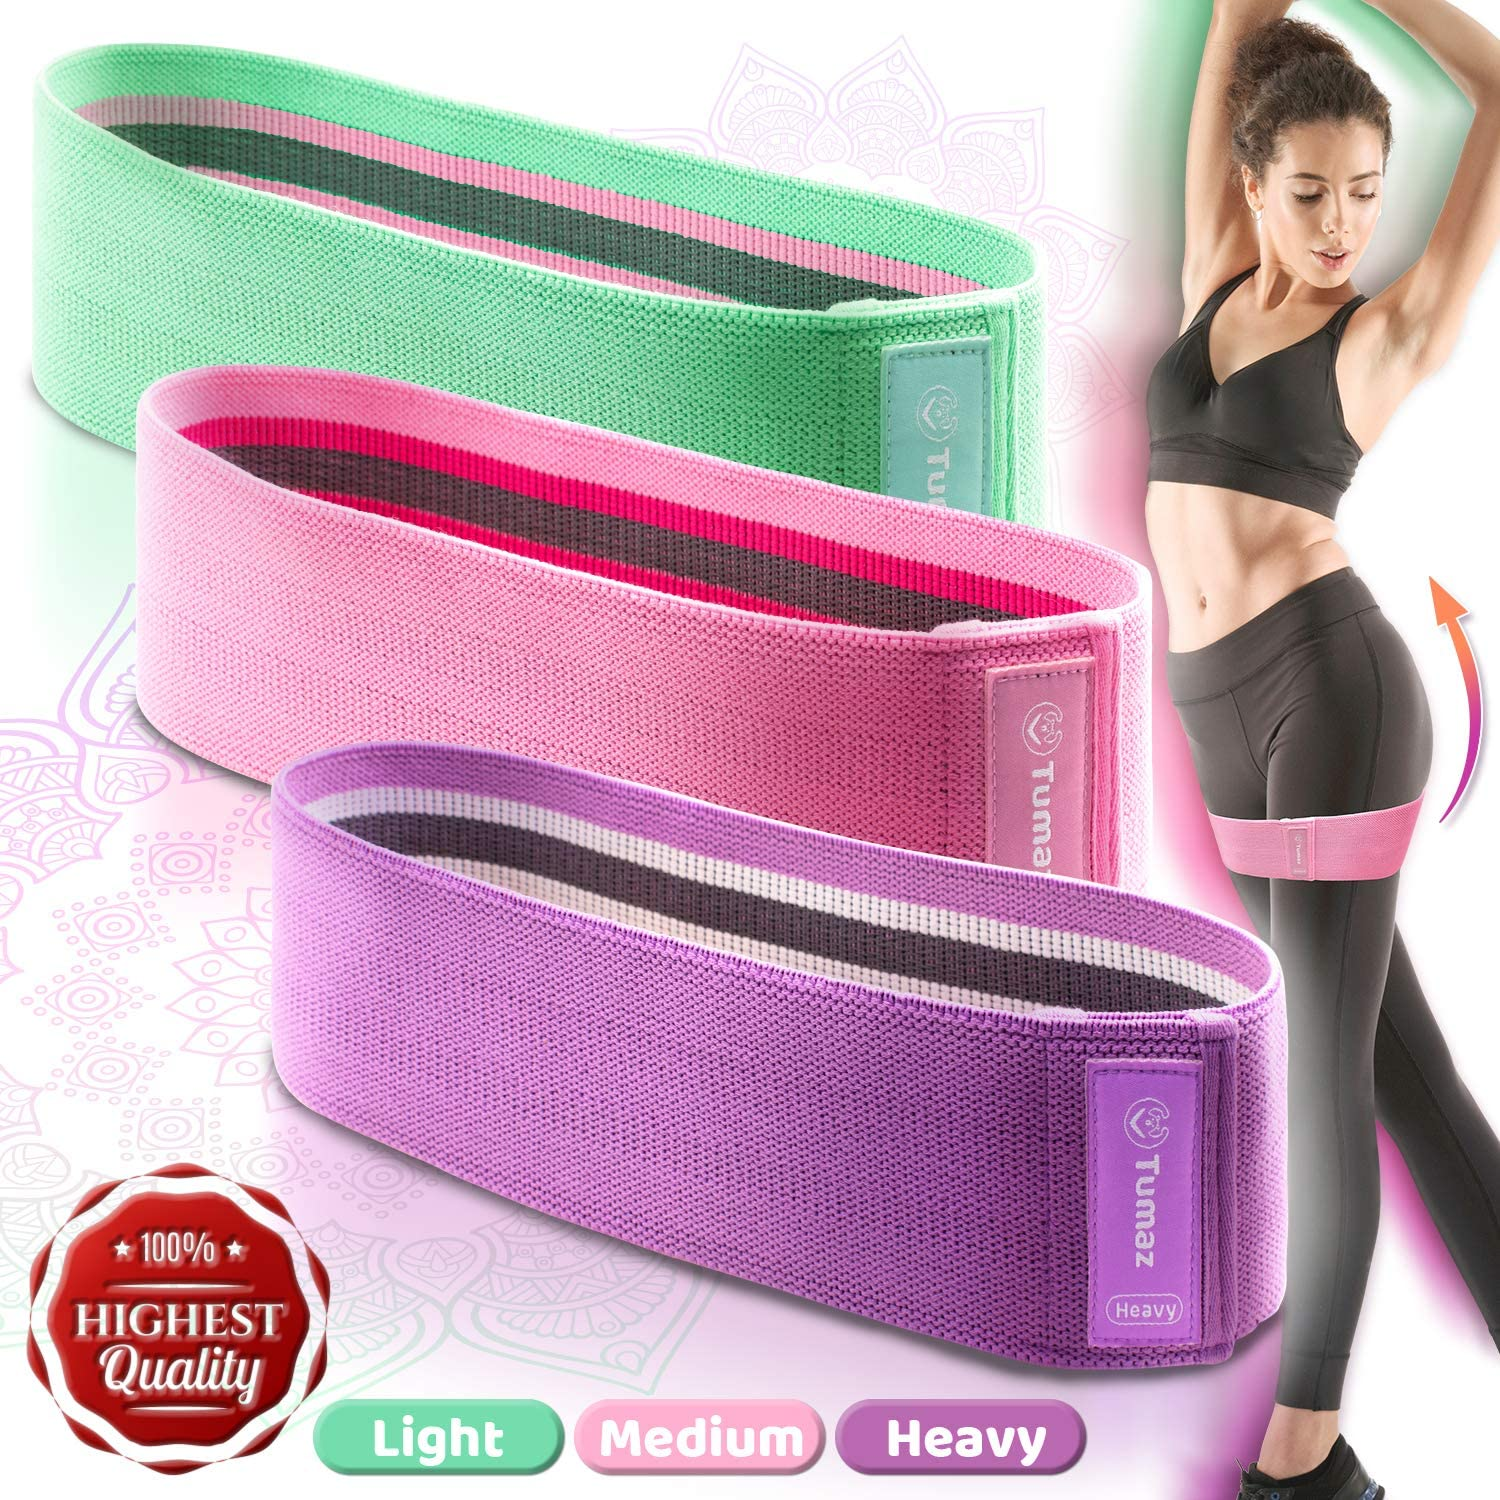 Tumaz Booty Bands, Premium Fabric Resistance Bands Always Ready for Home Workout, Fitness, Physical Therapy, Glute Anti-Slip Band [Skin-Friendly, Extra-Durable, Eco-Friendly] with Instruction E-Book